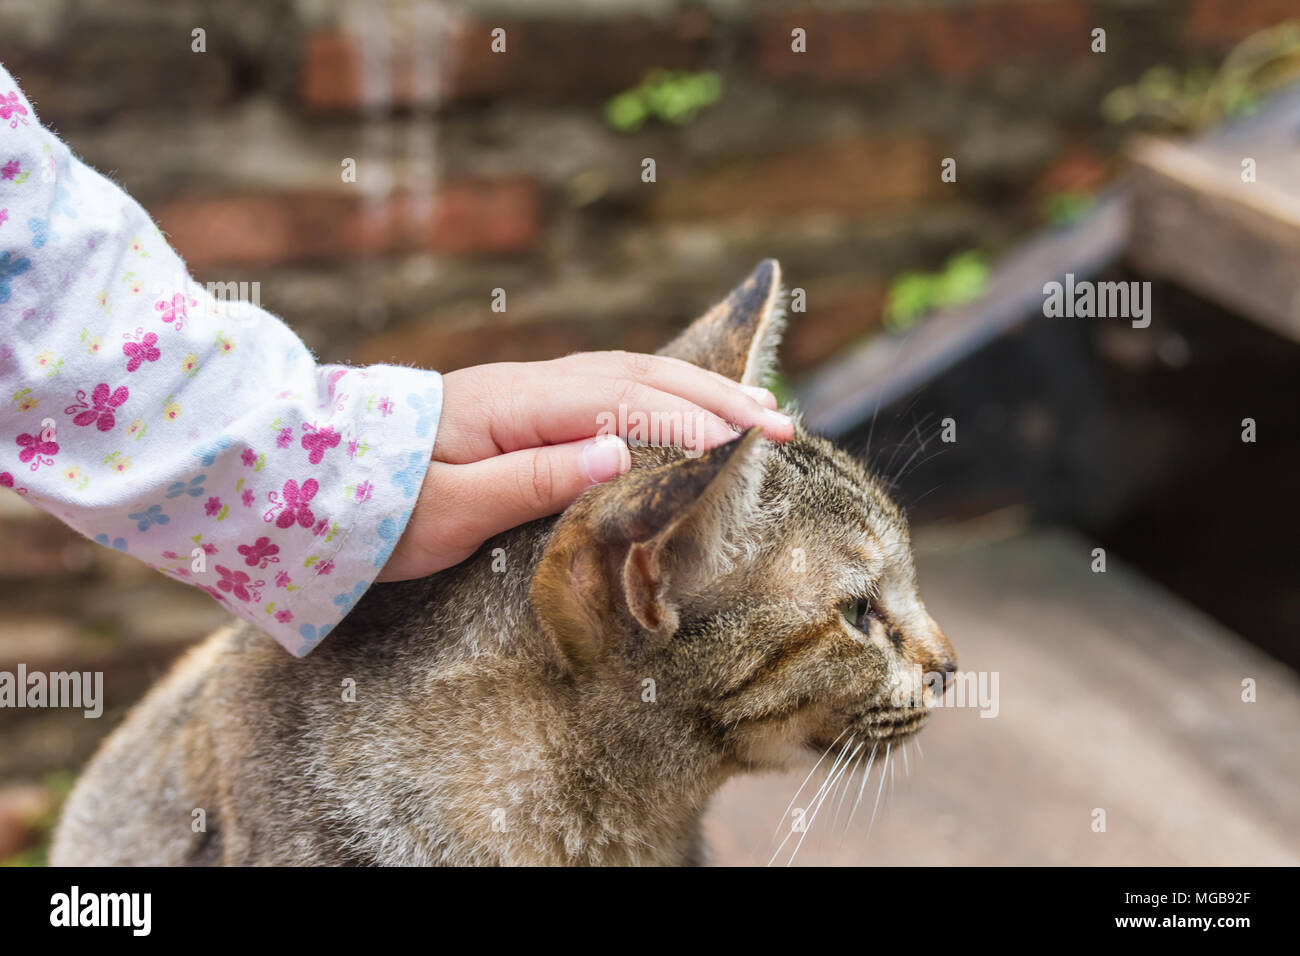 A tabby cat being stroked by a child hands Stock Photo